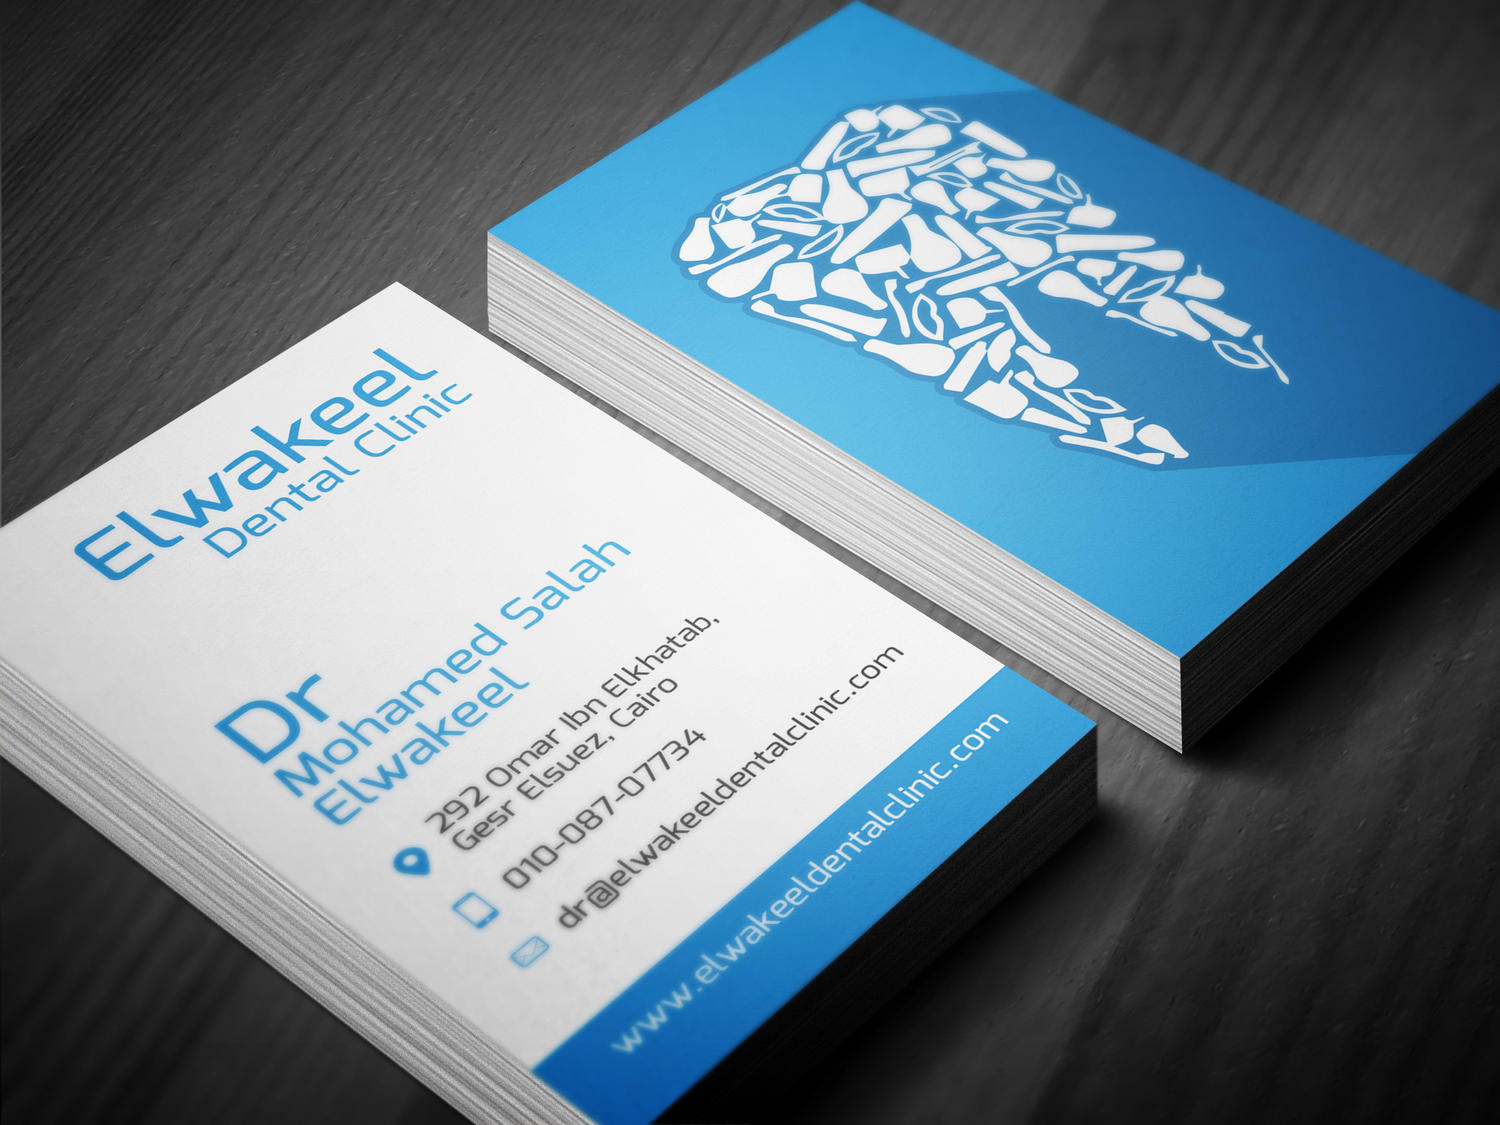 Creative Business Card Design by mmounirf - 79538